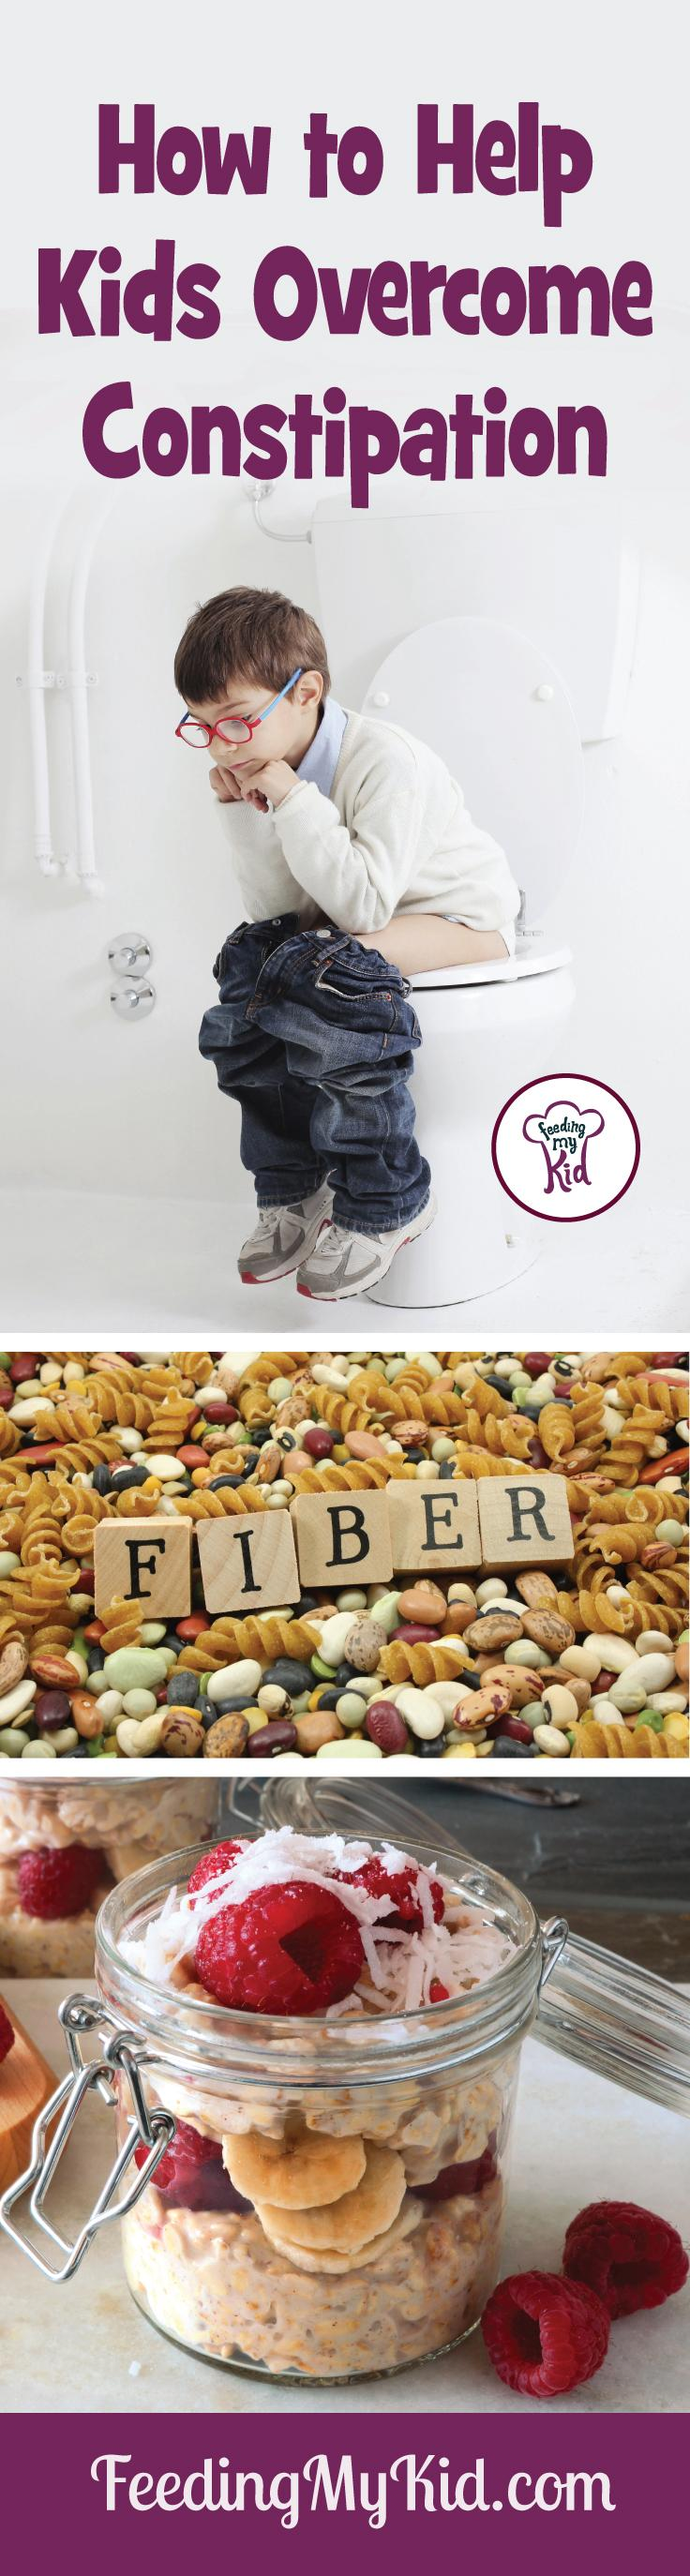 How to help overcome constipation! First, you'll learn the causes of constipation and then we will show you how to solve it. Feeding My Kid is filled with all the information you need about how to raise your kids, from healthy tips to nutritious recipes. #FeedingMyKid #constipation #poop #fiber